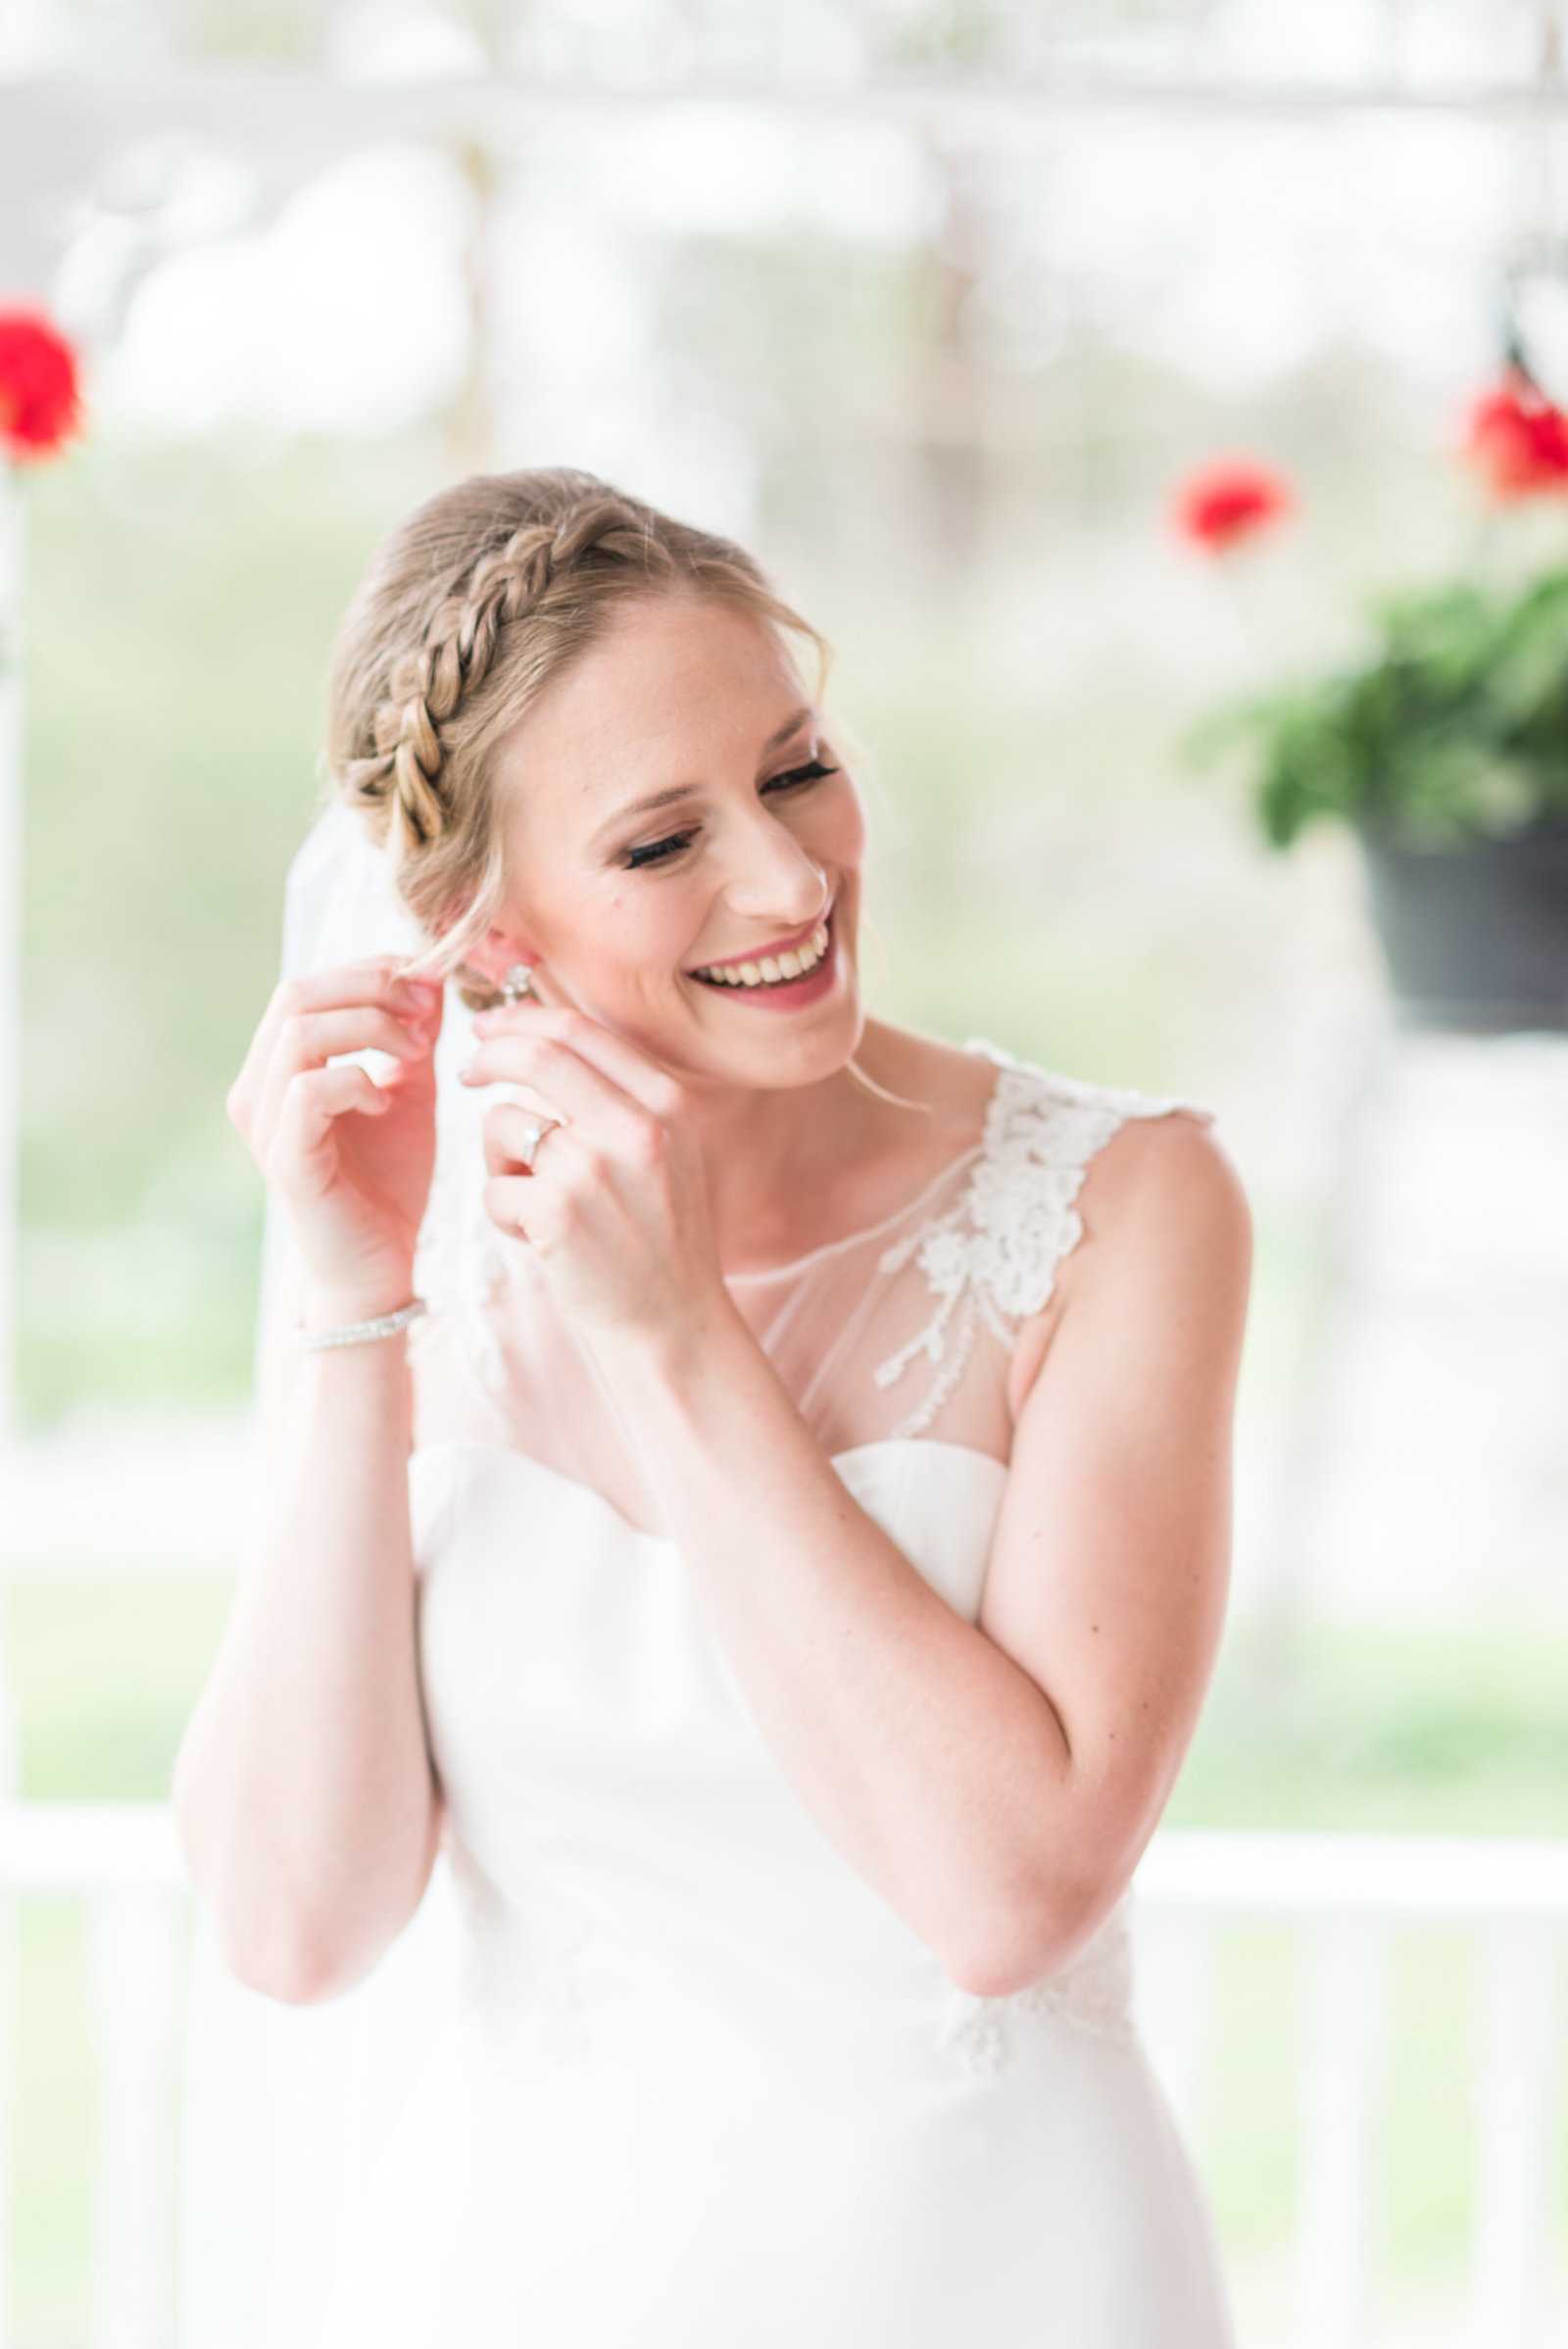 Katie-Louis-Wedding-123645